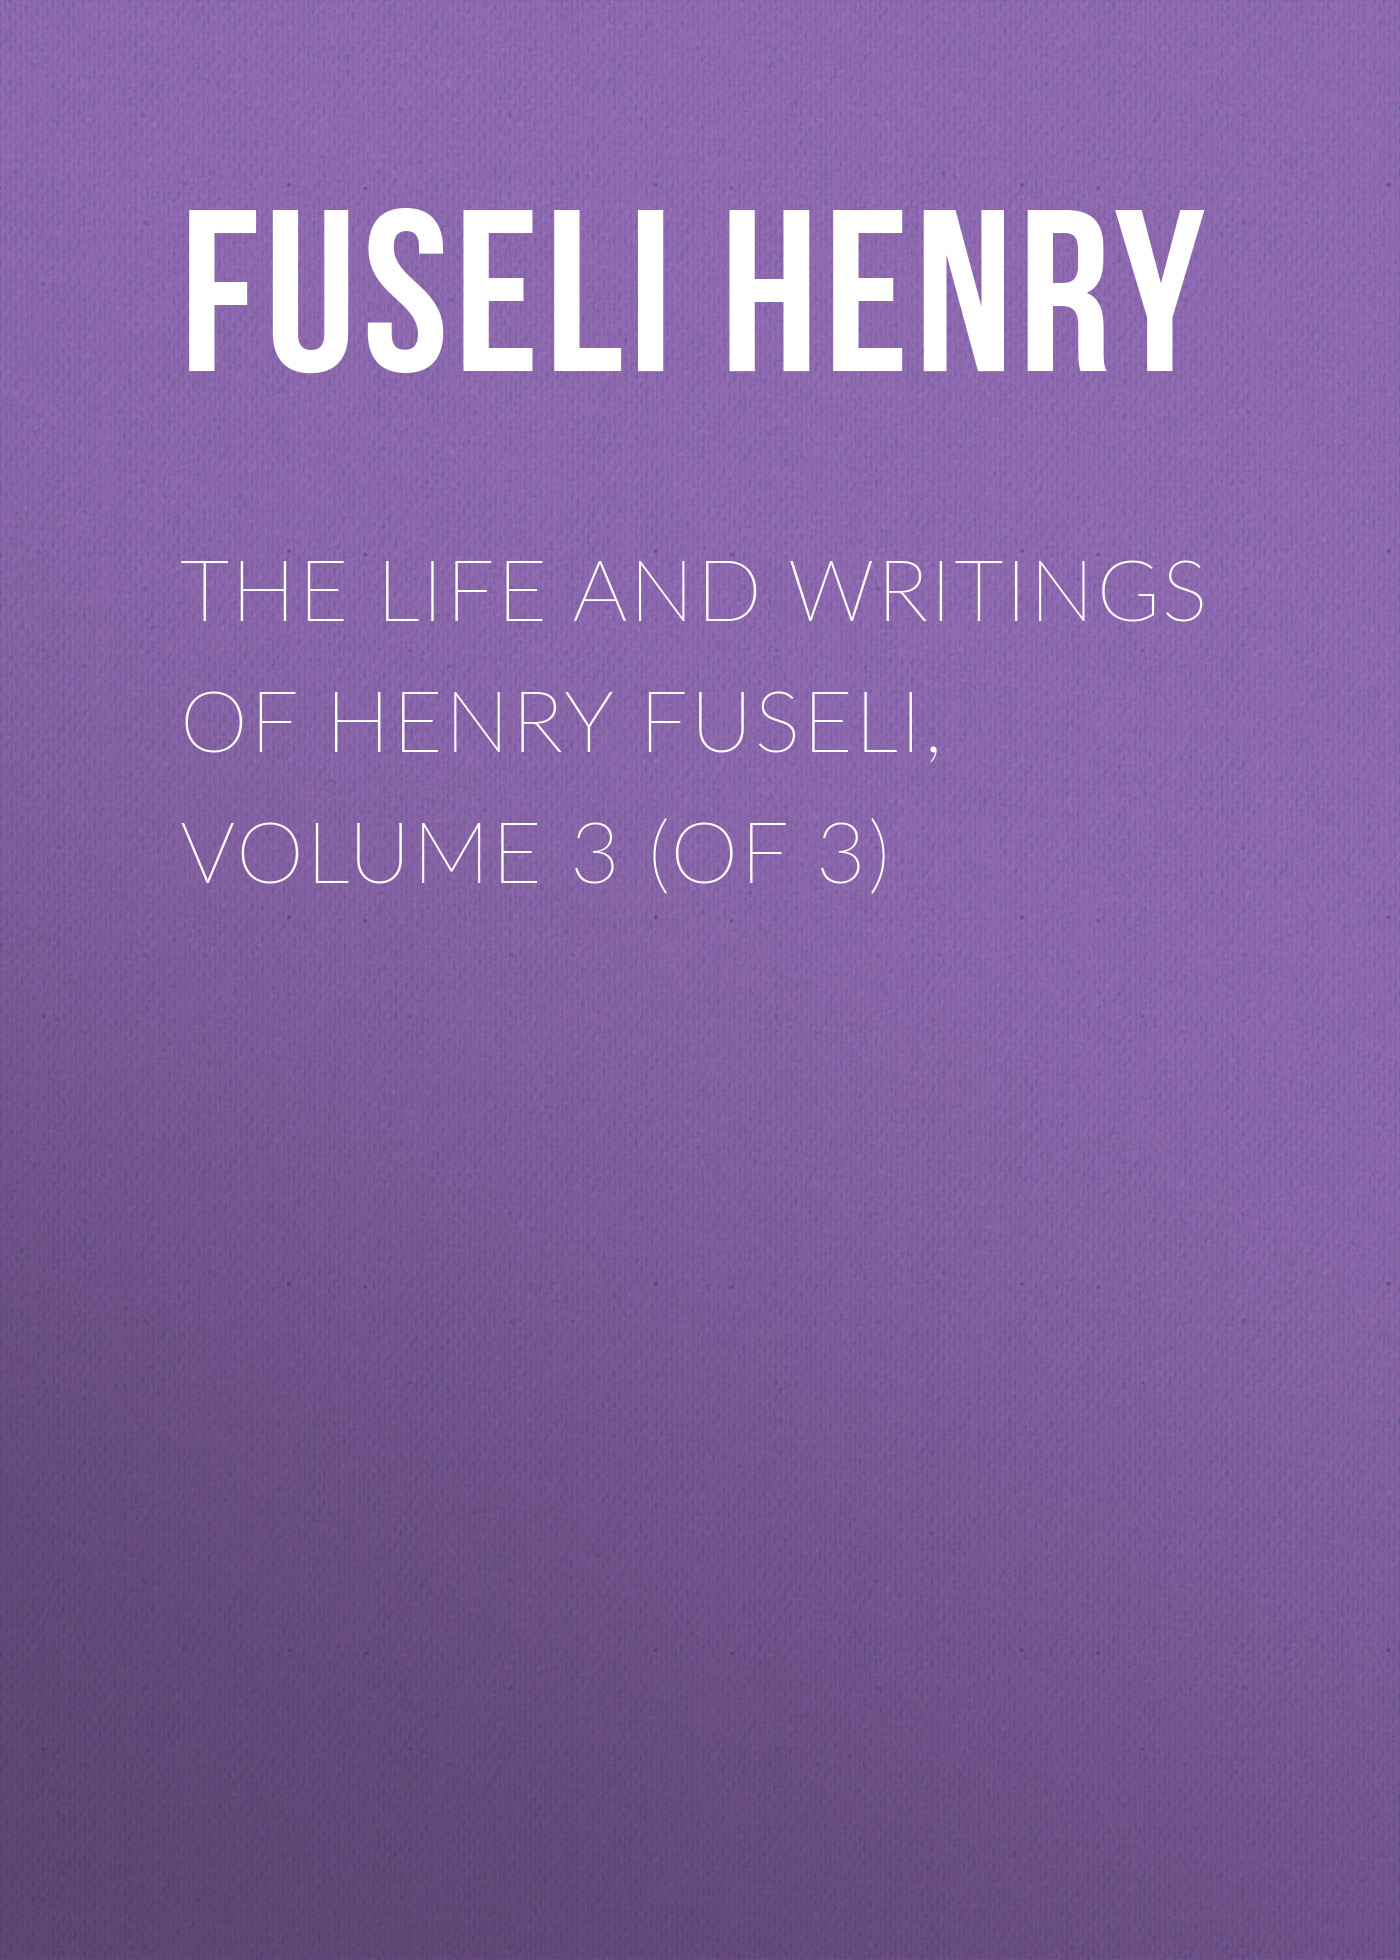 Fuseli Henry The Life and Writings of Henry Fuseli, Volume 3 (of 3)